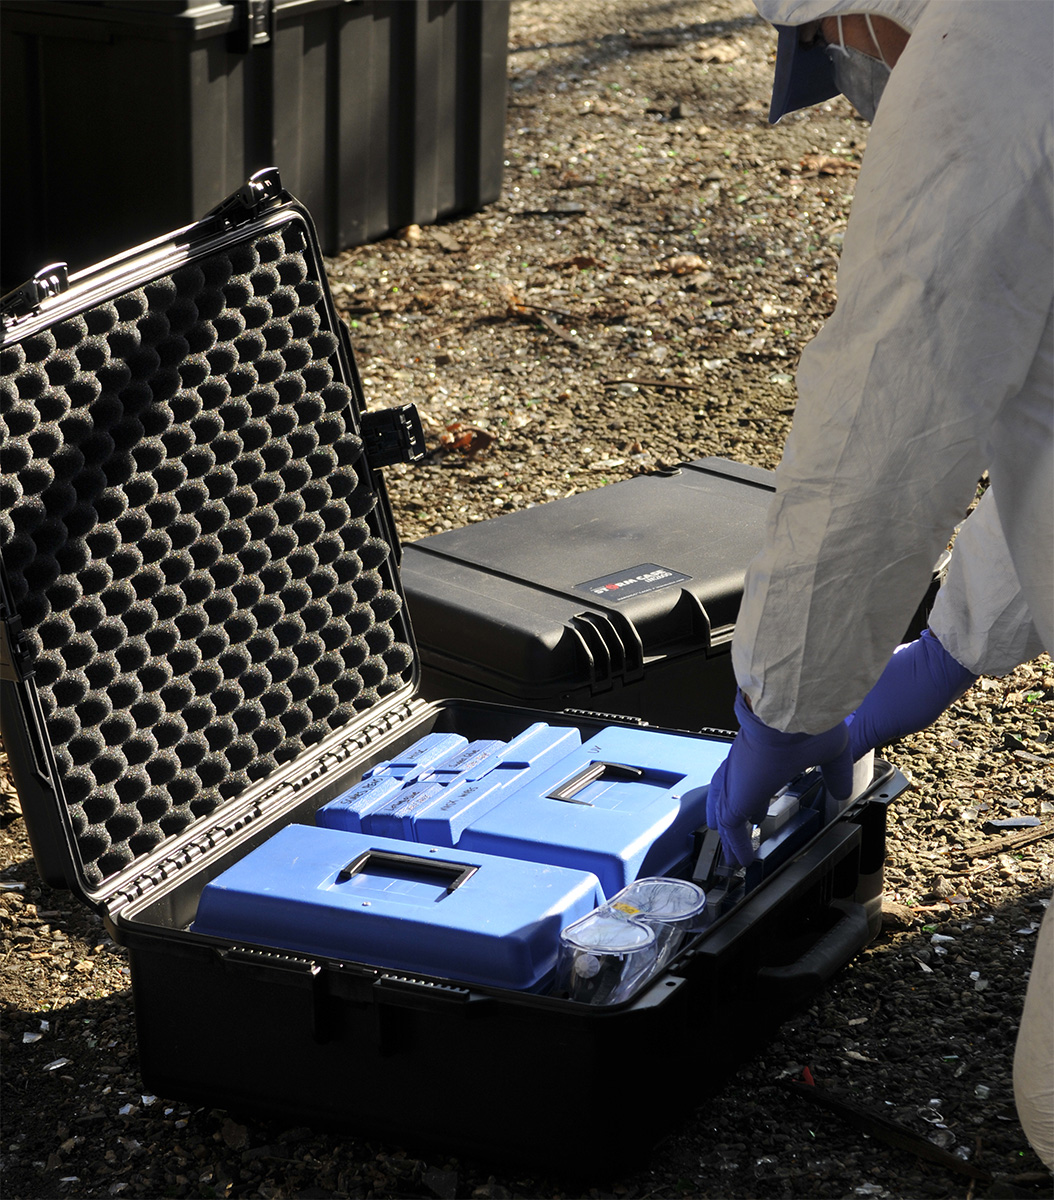 pelican peli products iM2600 police tactical forensics gear case